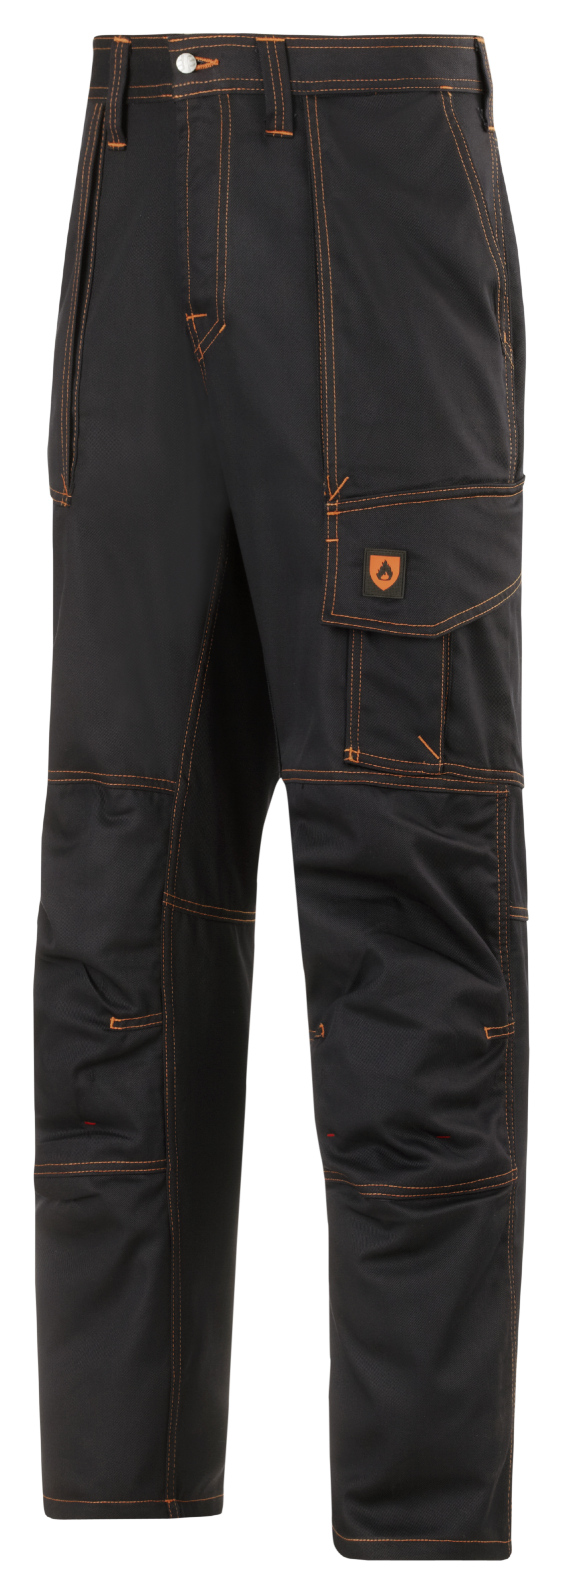 Snickers Flame Retardant Broek